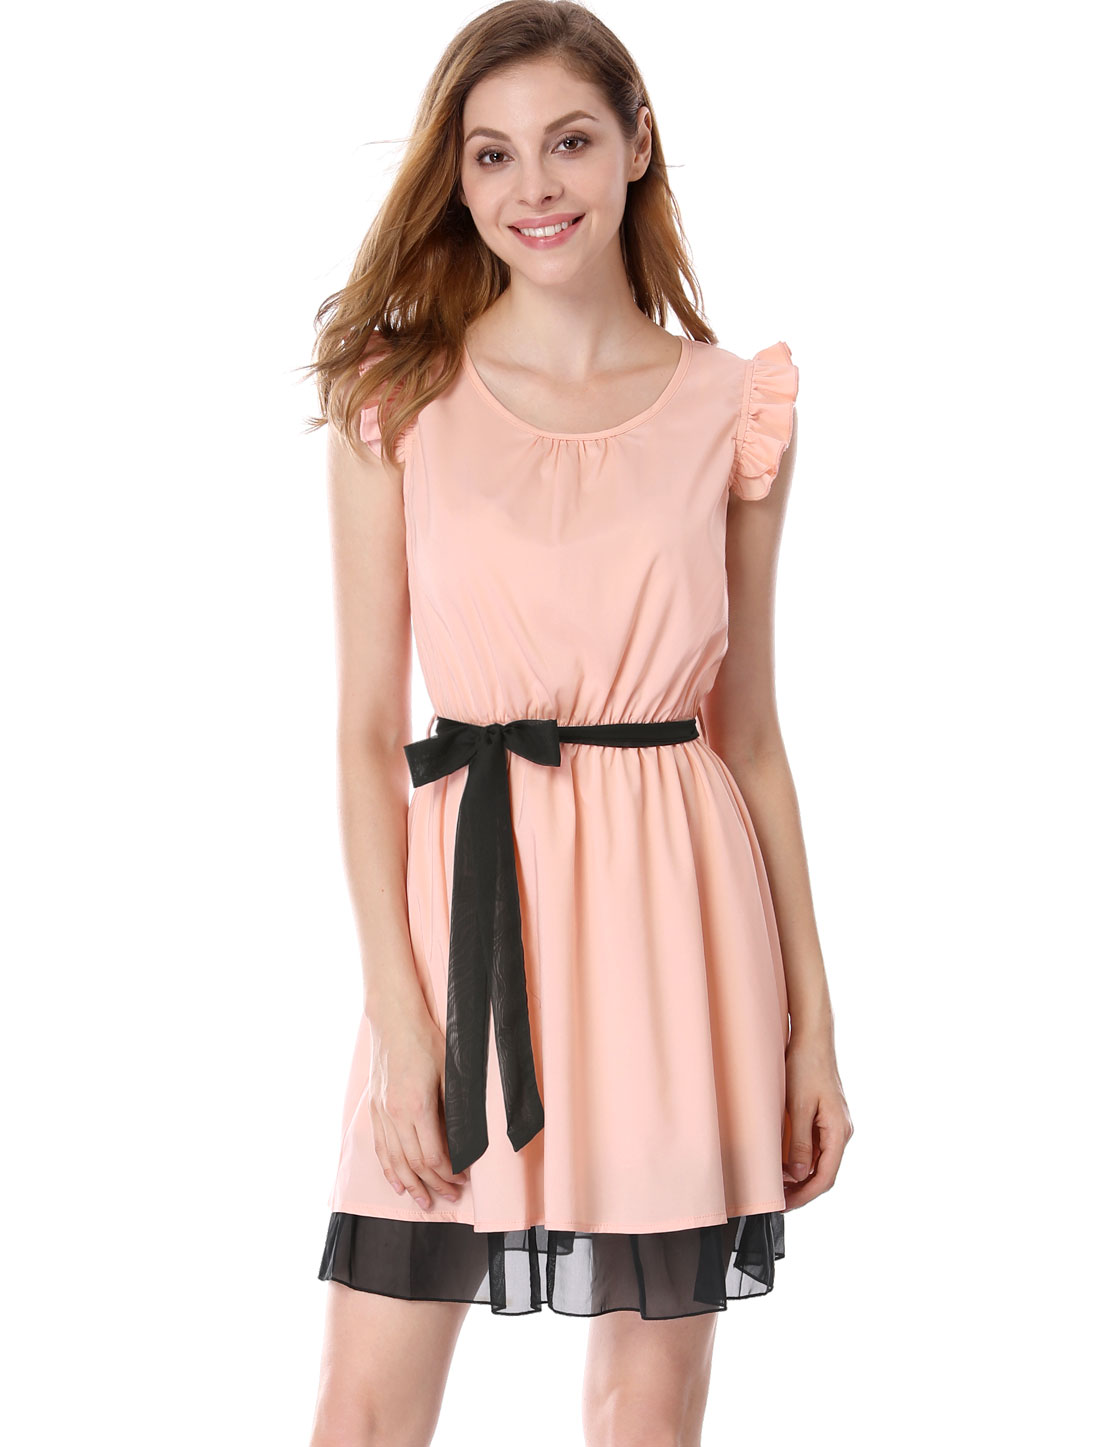 Lady Pink Color Scoop Neck Elastic Waist Lined Above Knee Dress M